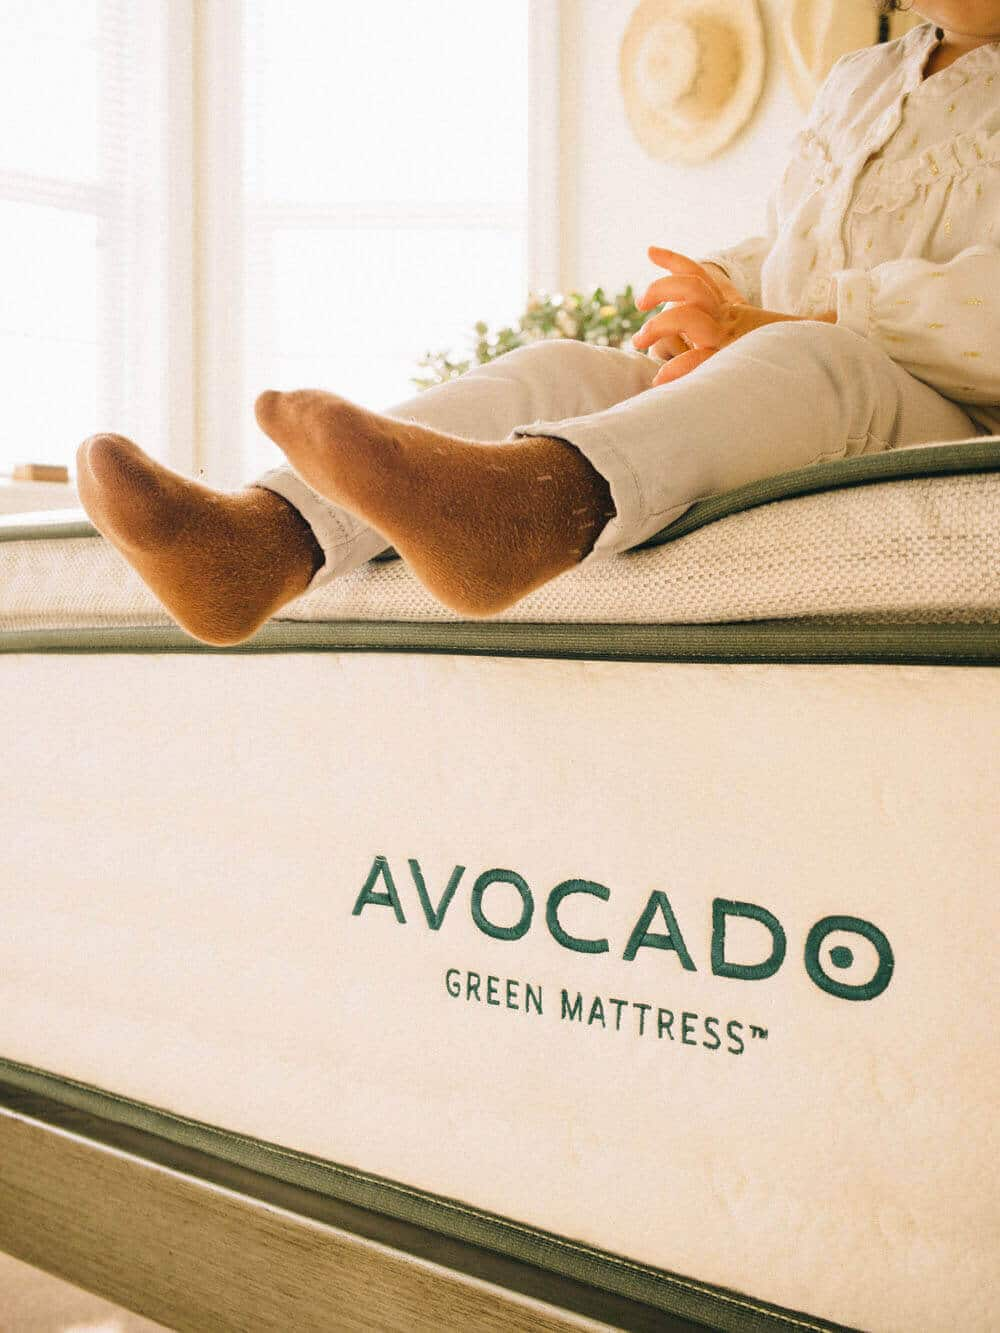 Avocado Green Mattress Images